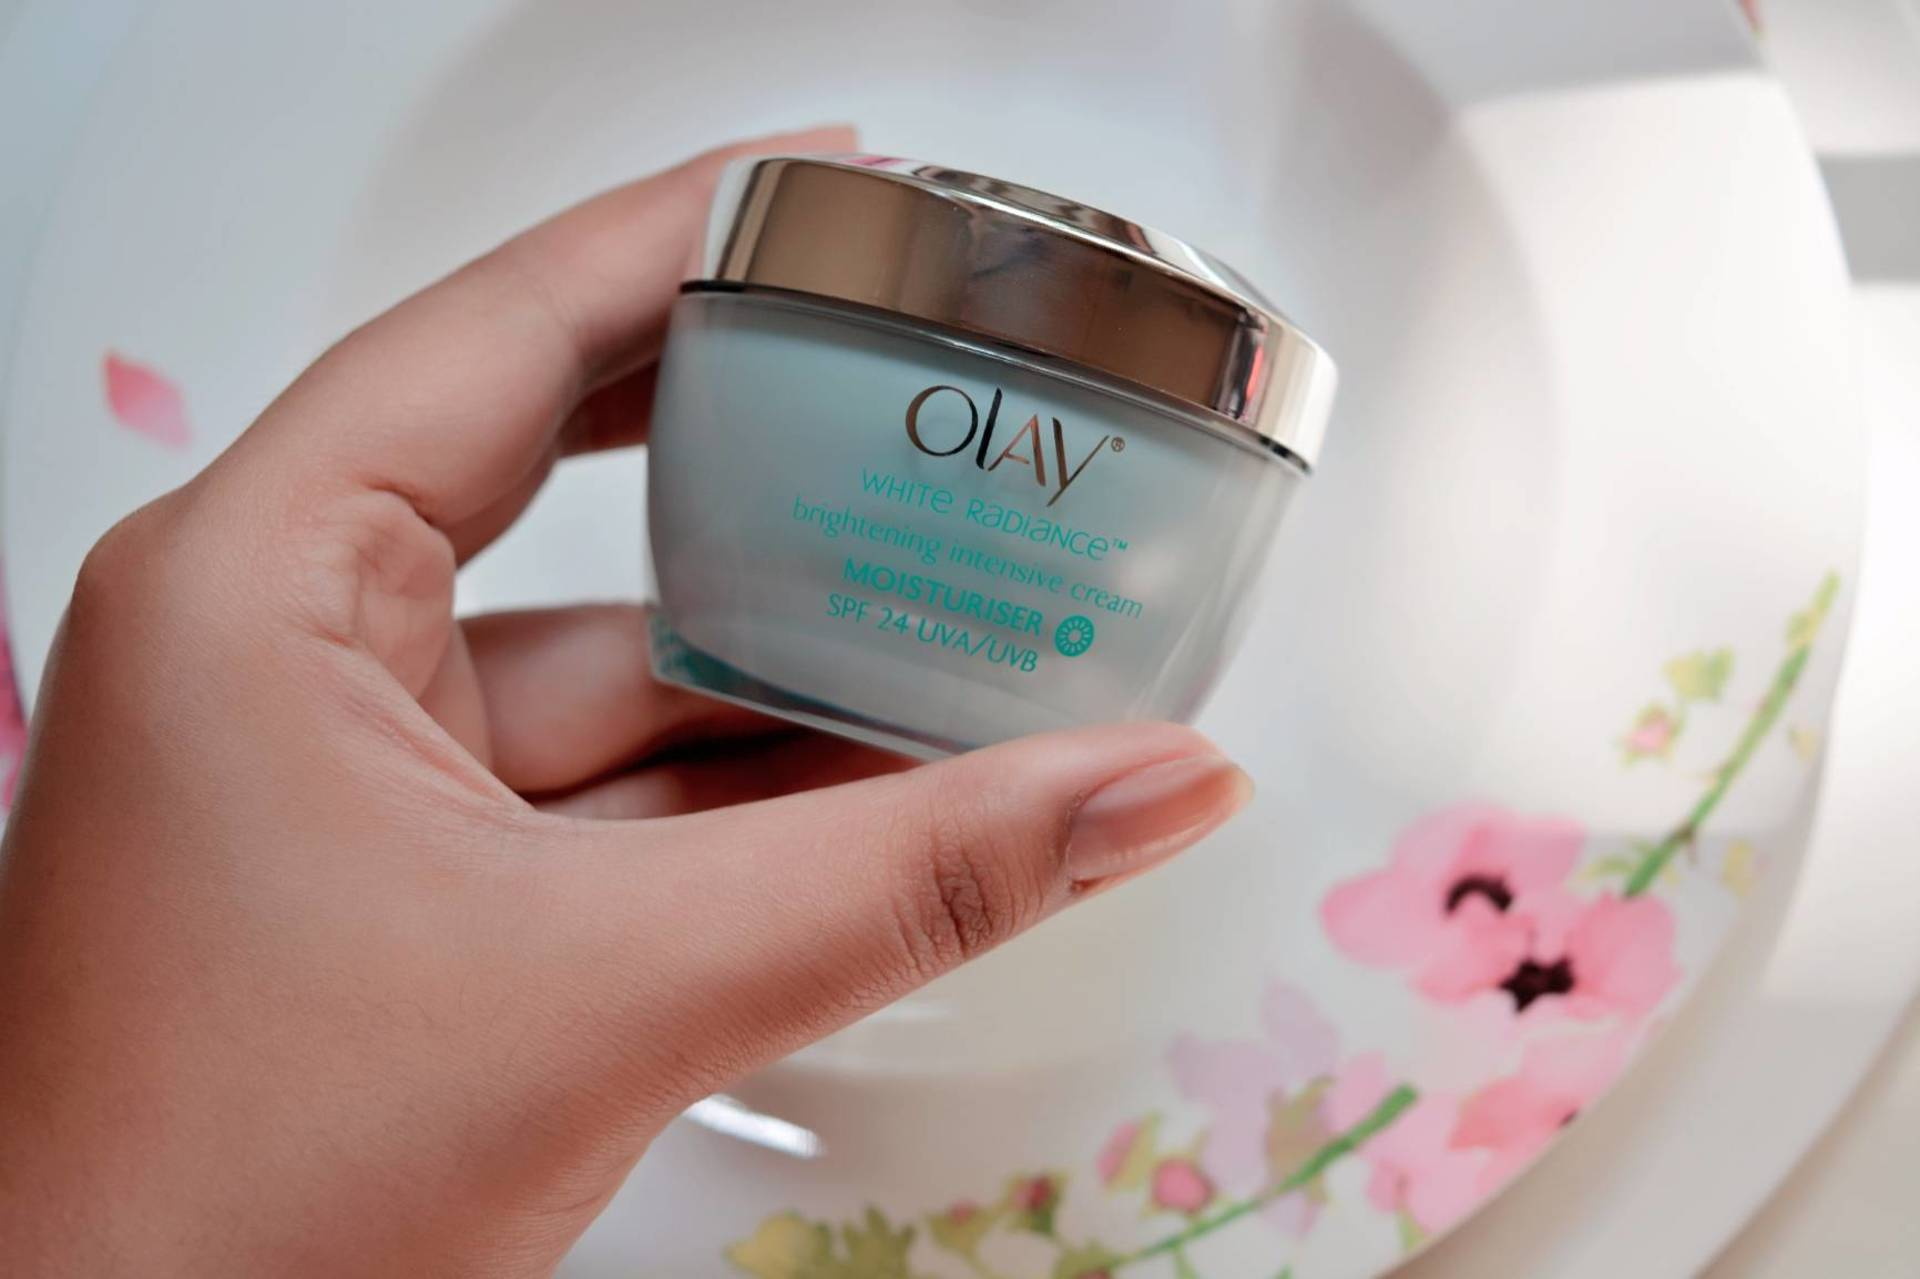 Olay White Radiance Advanced Intensive Moisturizer Review image